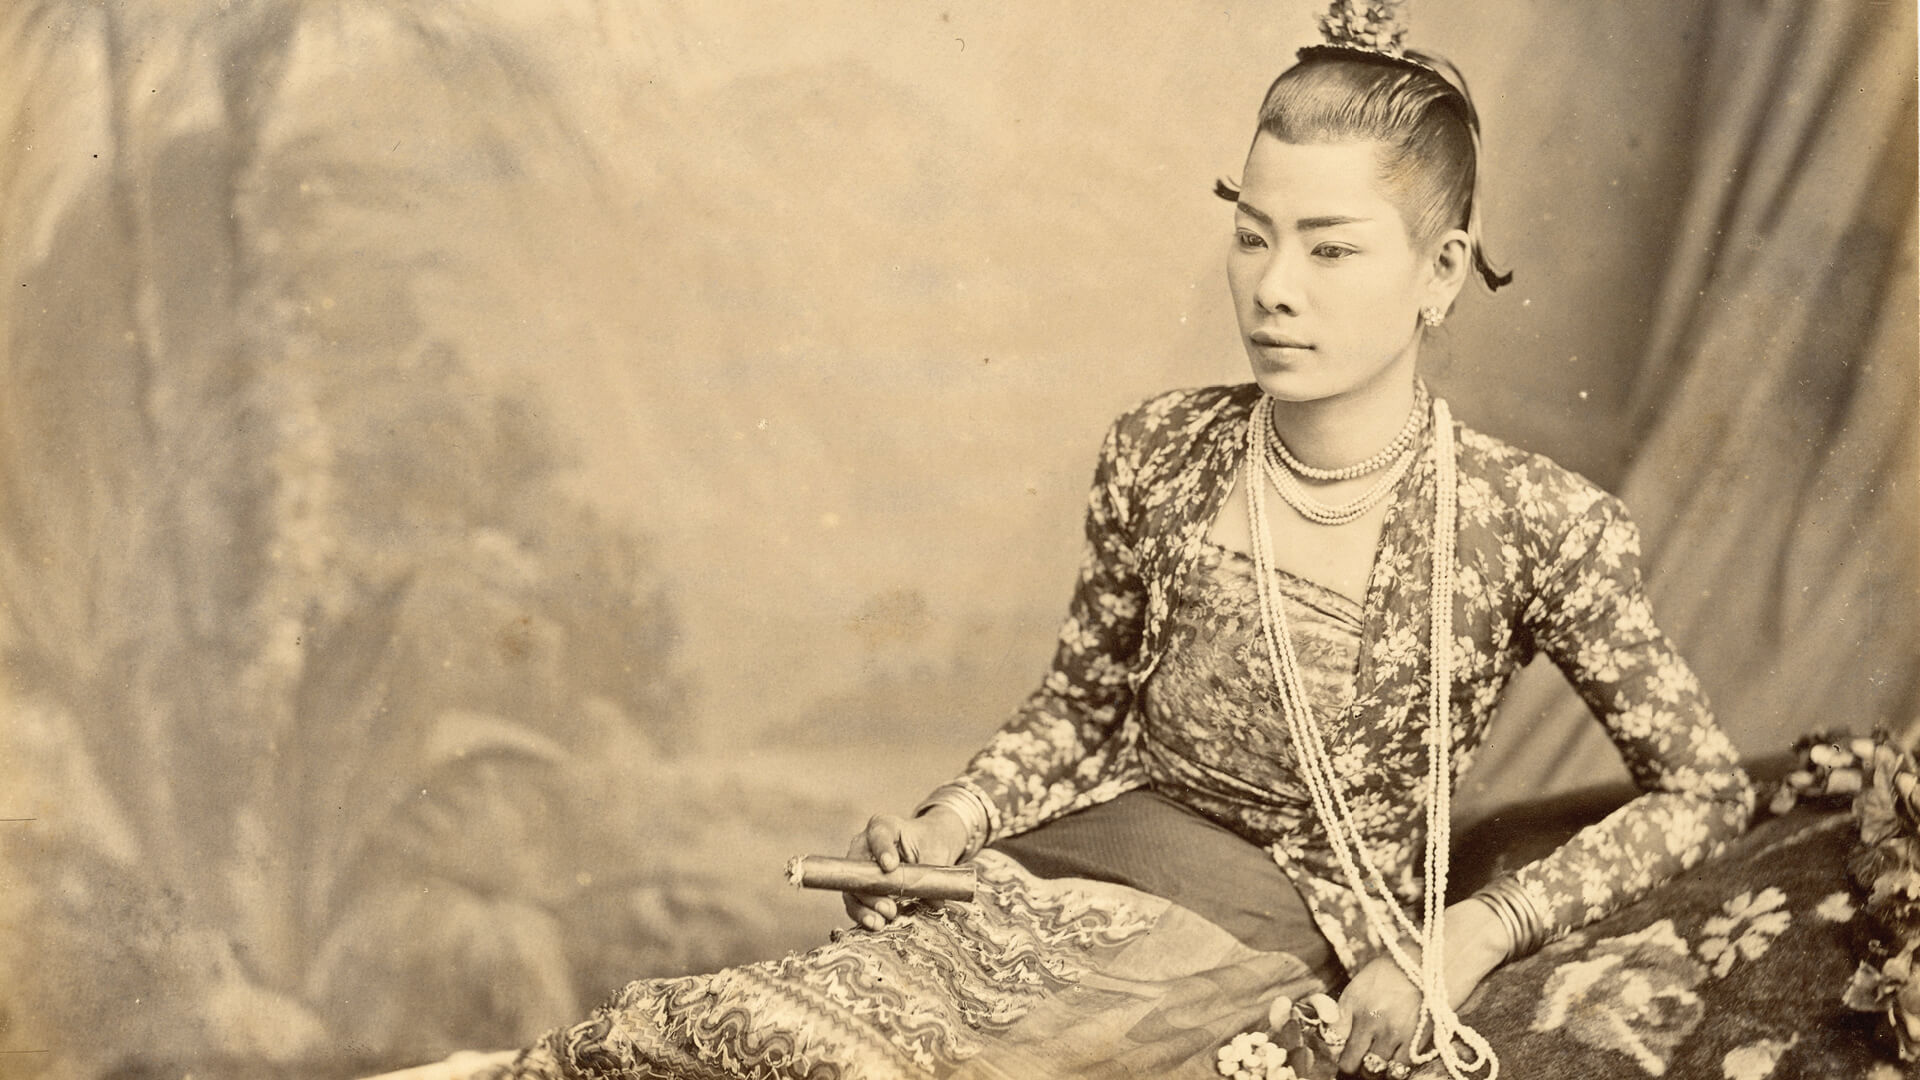 'A portrait of a Lady Boy Smoking' by Emile Gsell between the 1870s and 1890s in Burma | (Re)Imagining the Image: Contemporary Artists in Asia Converse with Photography | Emile Gsell | STIRworld